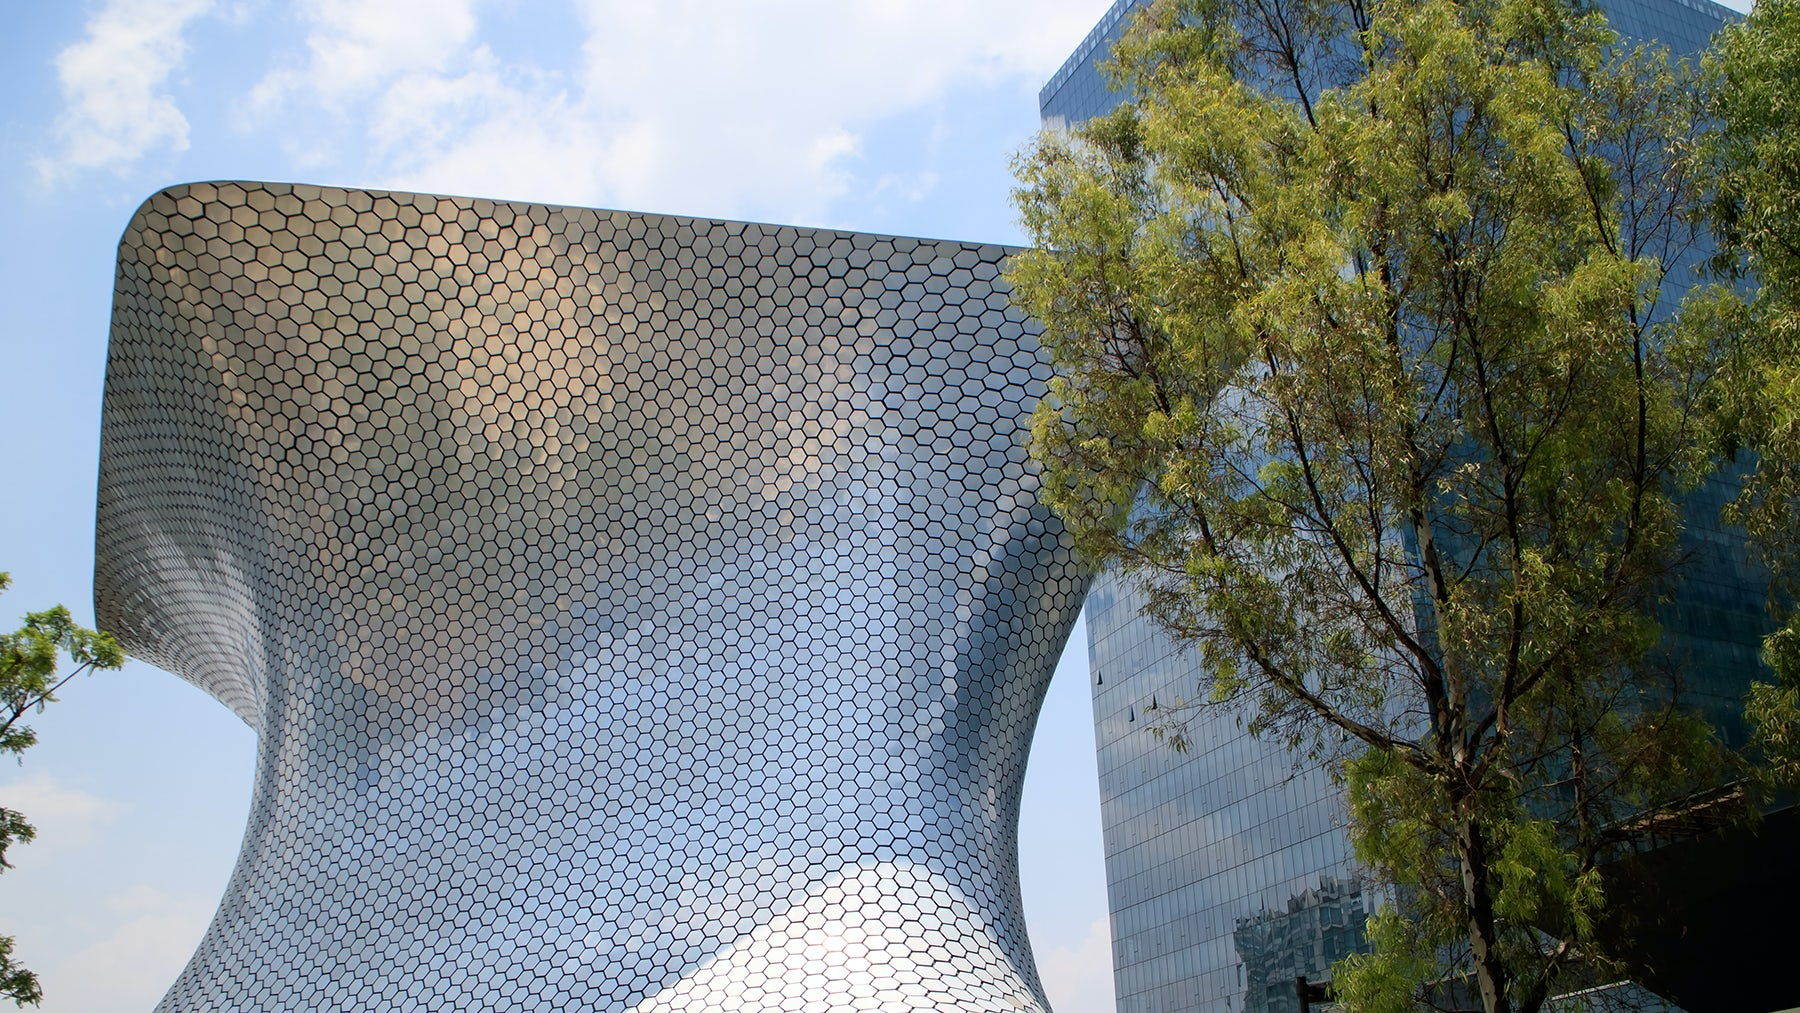 Museo Soumaya in Mexico City, home to many of the capital's luxury retailers   Source: Shutterstock